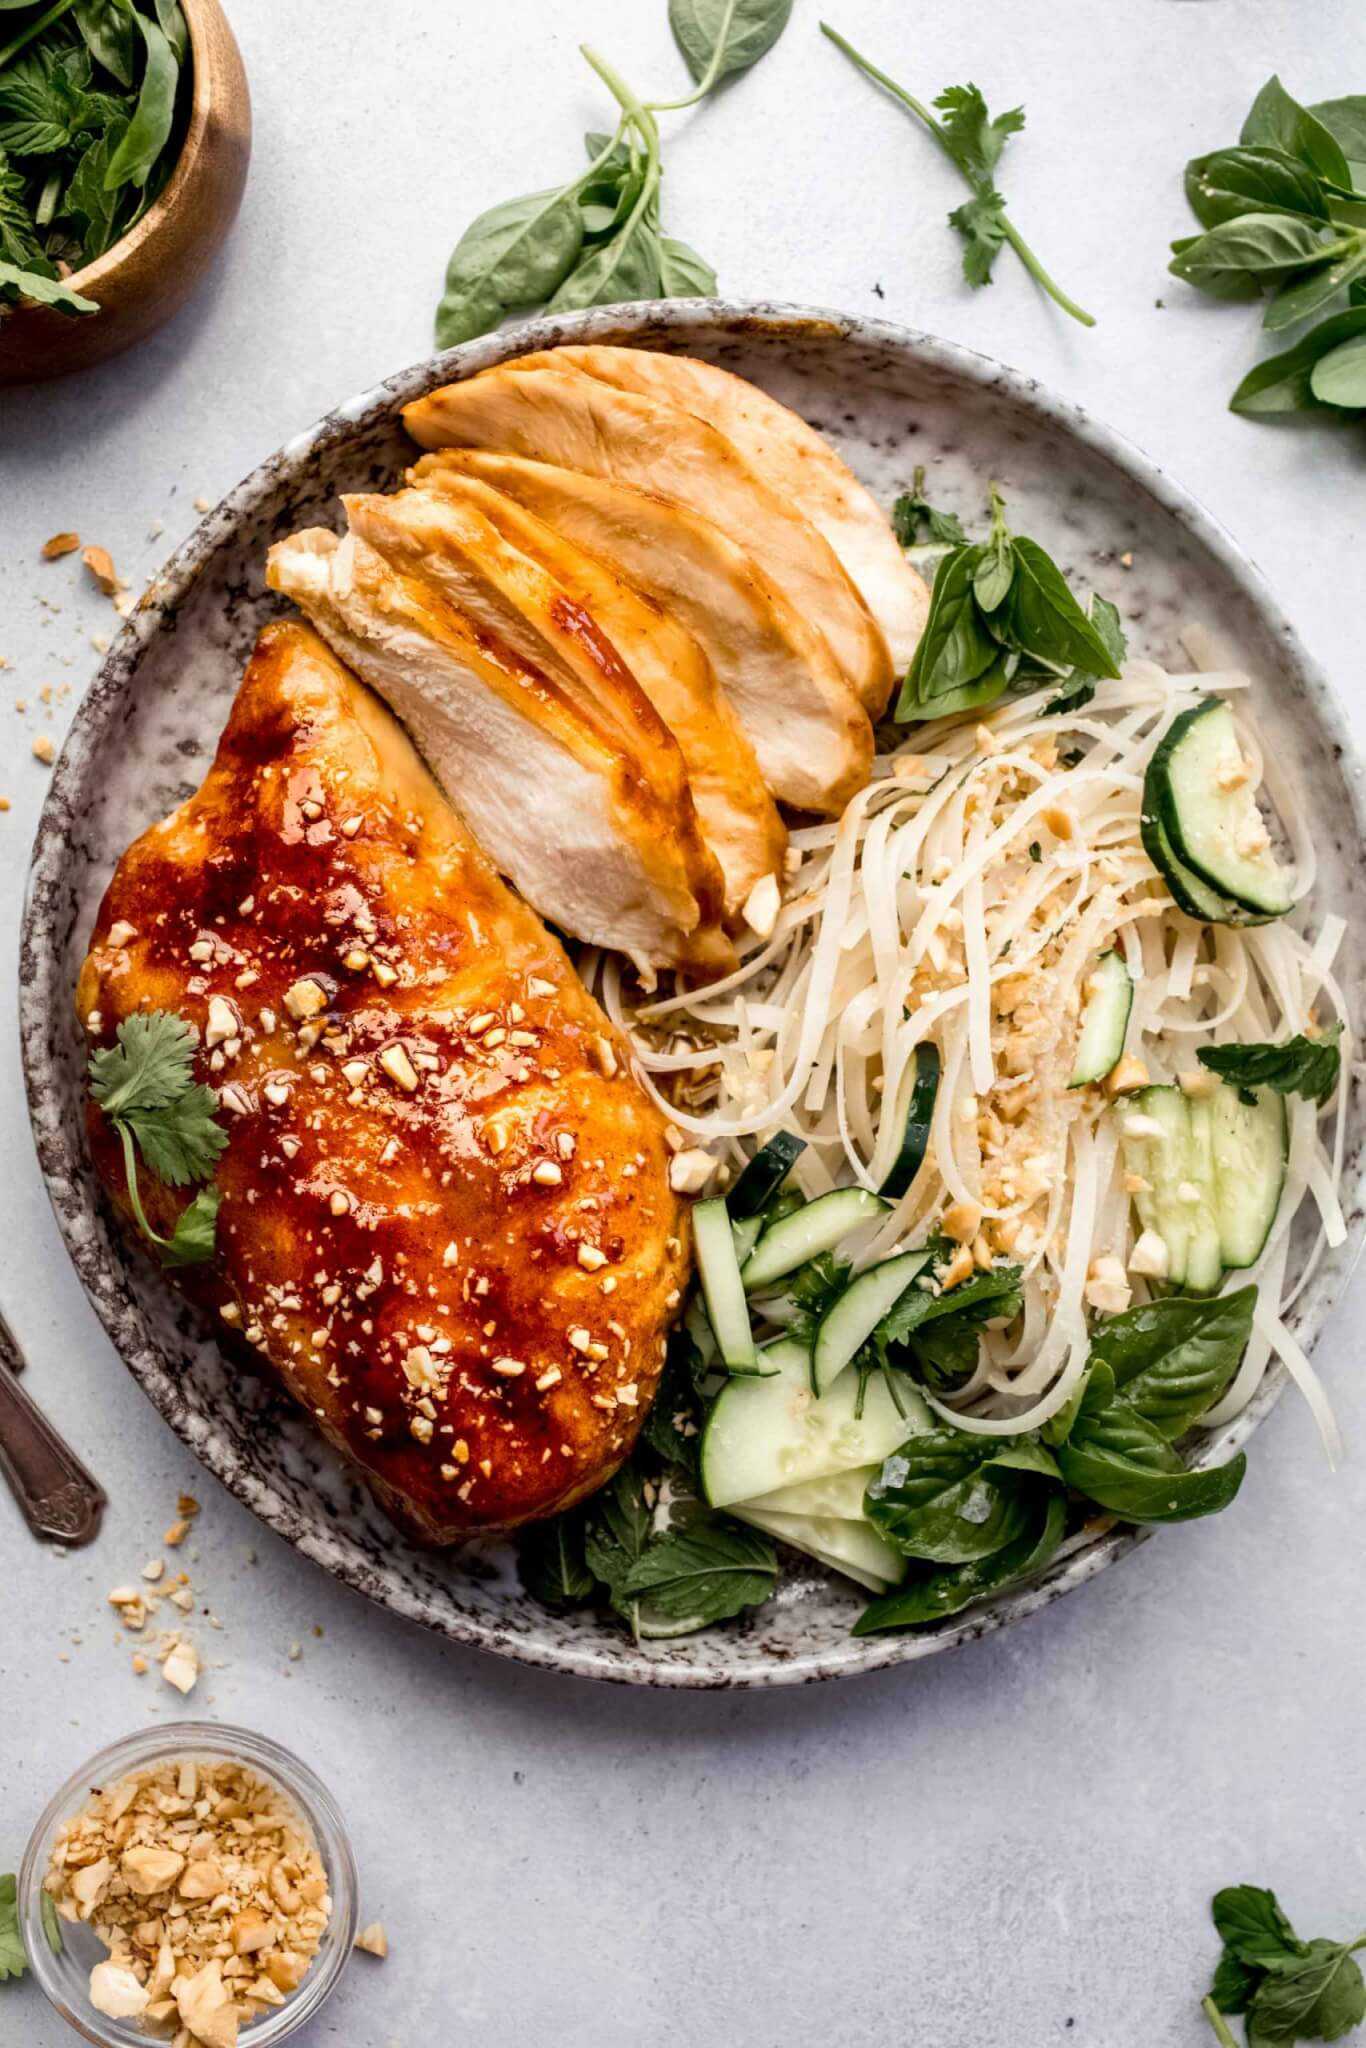 Whole sous vide miso chicken breast and sliced up miso chicken on plate with noodle salad.